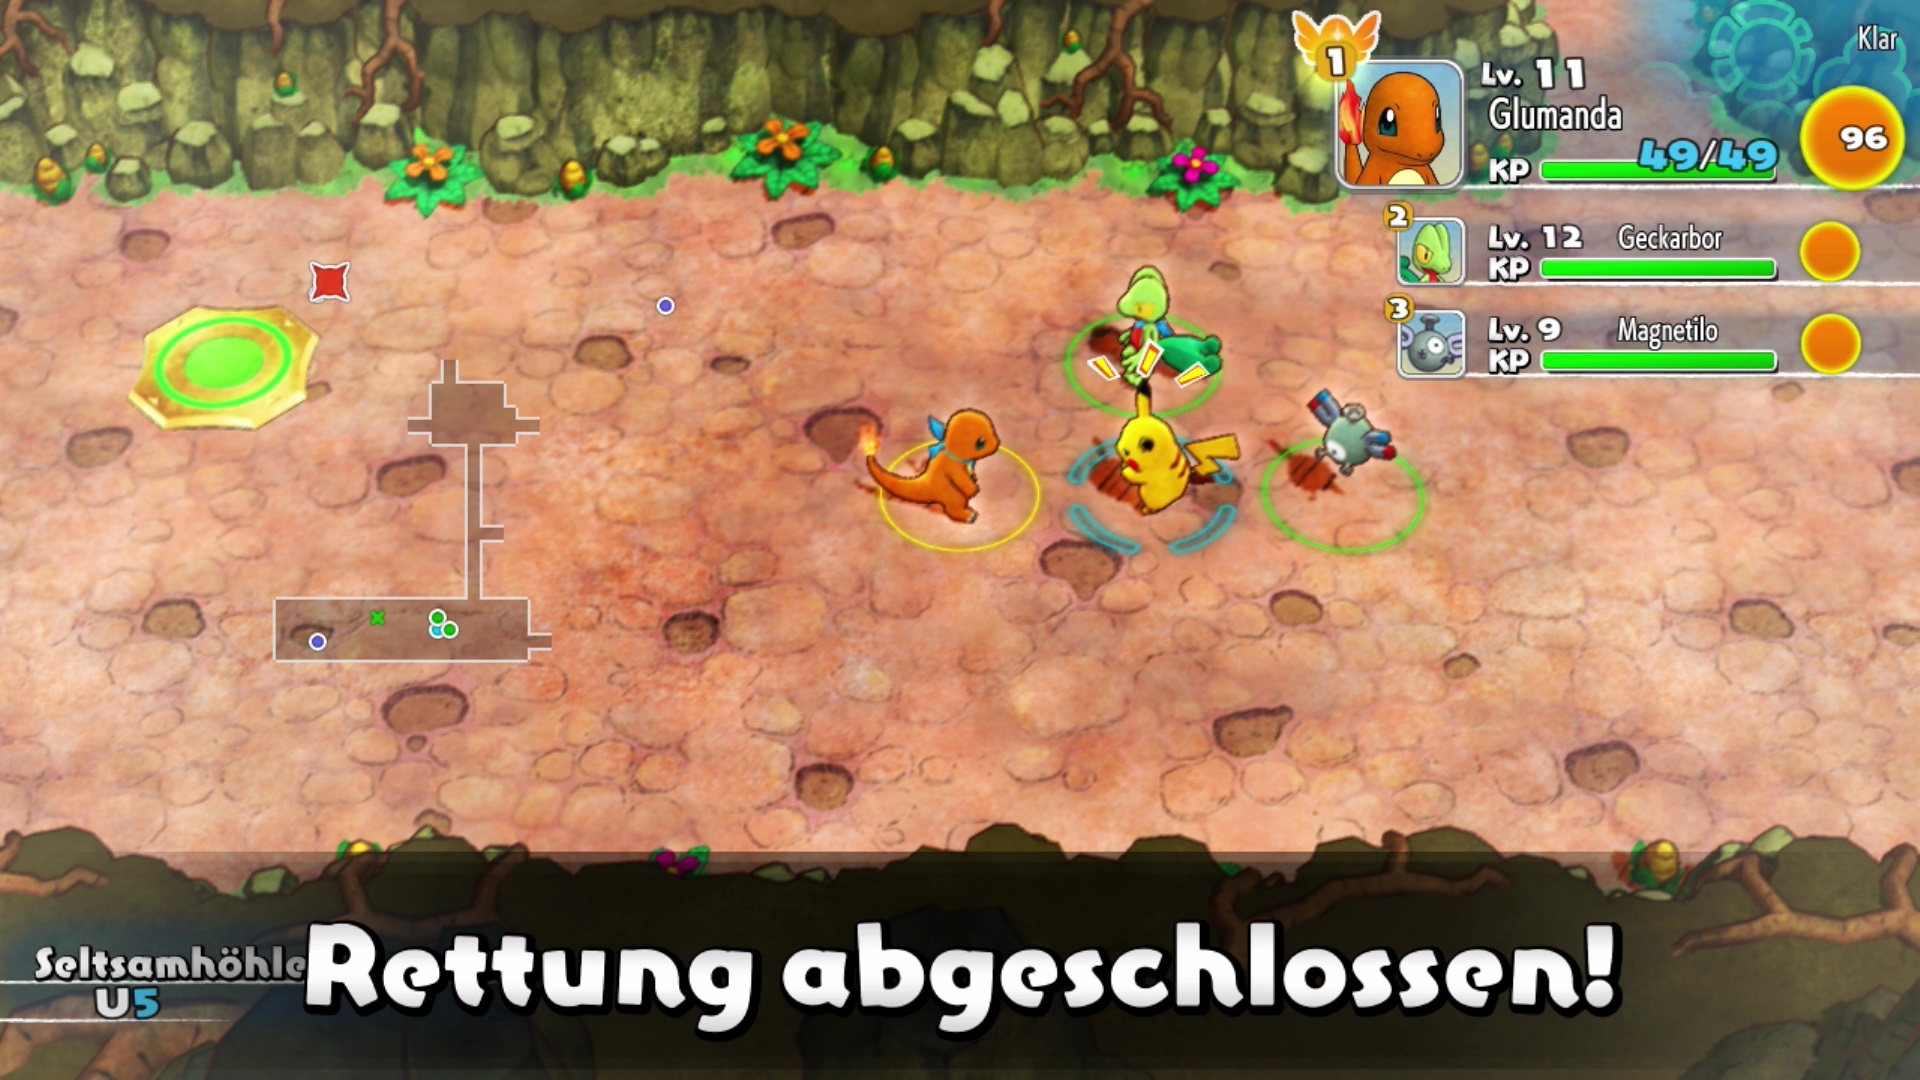 NSwitch_PokemonMysteryDungeon_20_DE.jpg